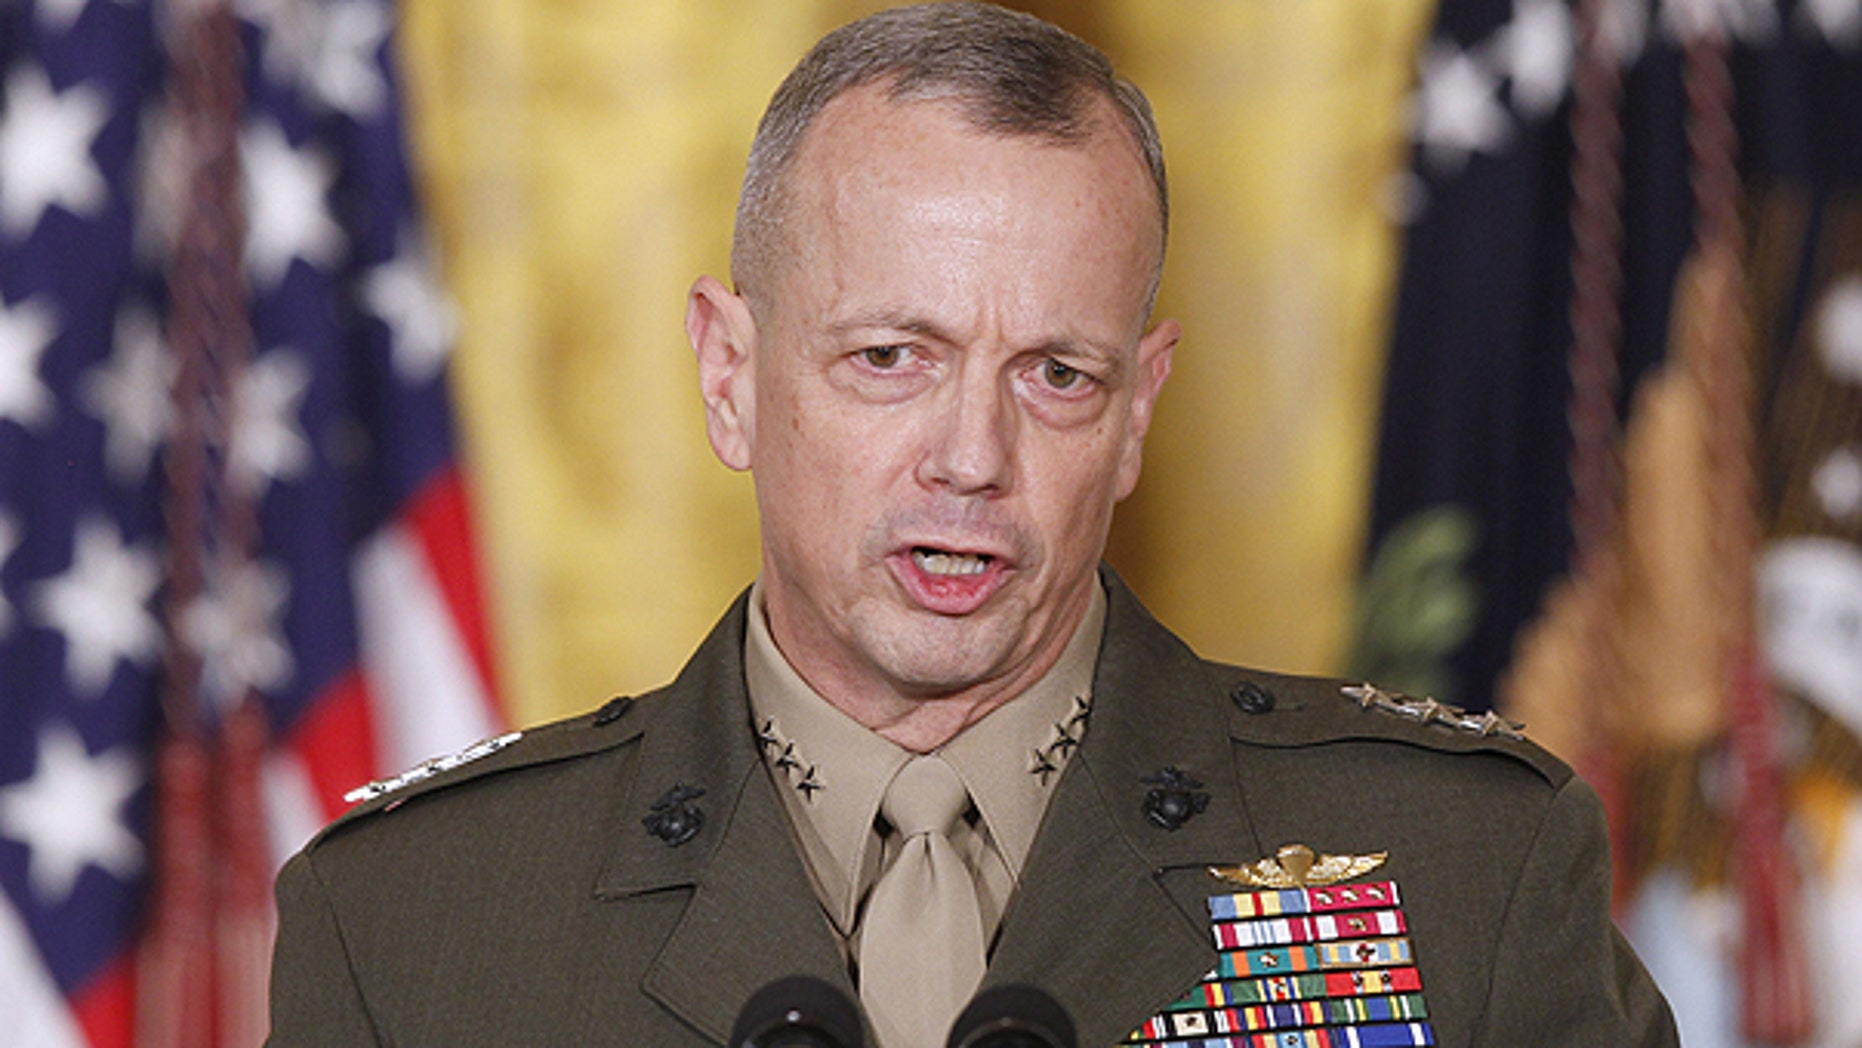 In an April 28, 2011 file photo Marine Corps Lt. Gen. John Allen, speaks in the East Room of the White House in Washington. Allen who will take over as the top U.S. commander in Afghanistan endorsed the size and pace of the more than 30,000-troop withdrawal laid out by President Obama.